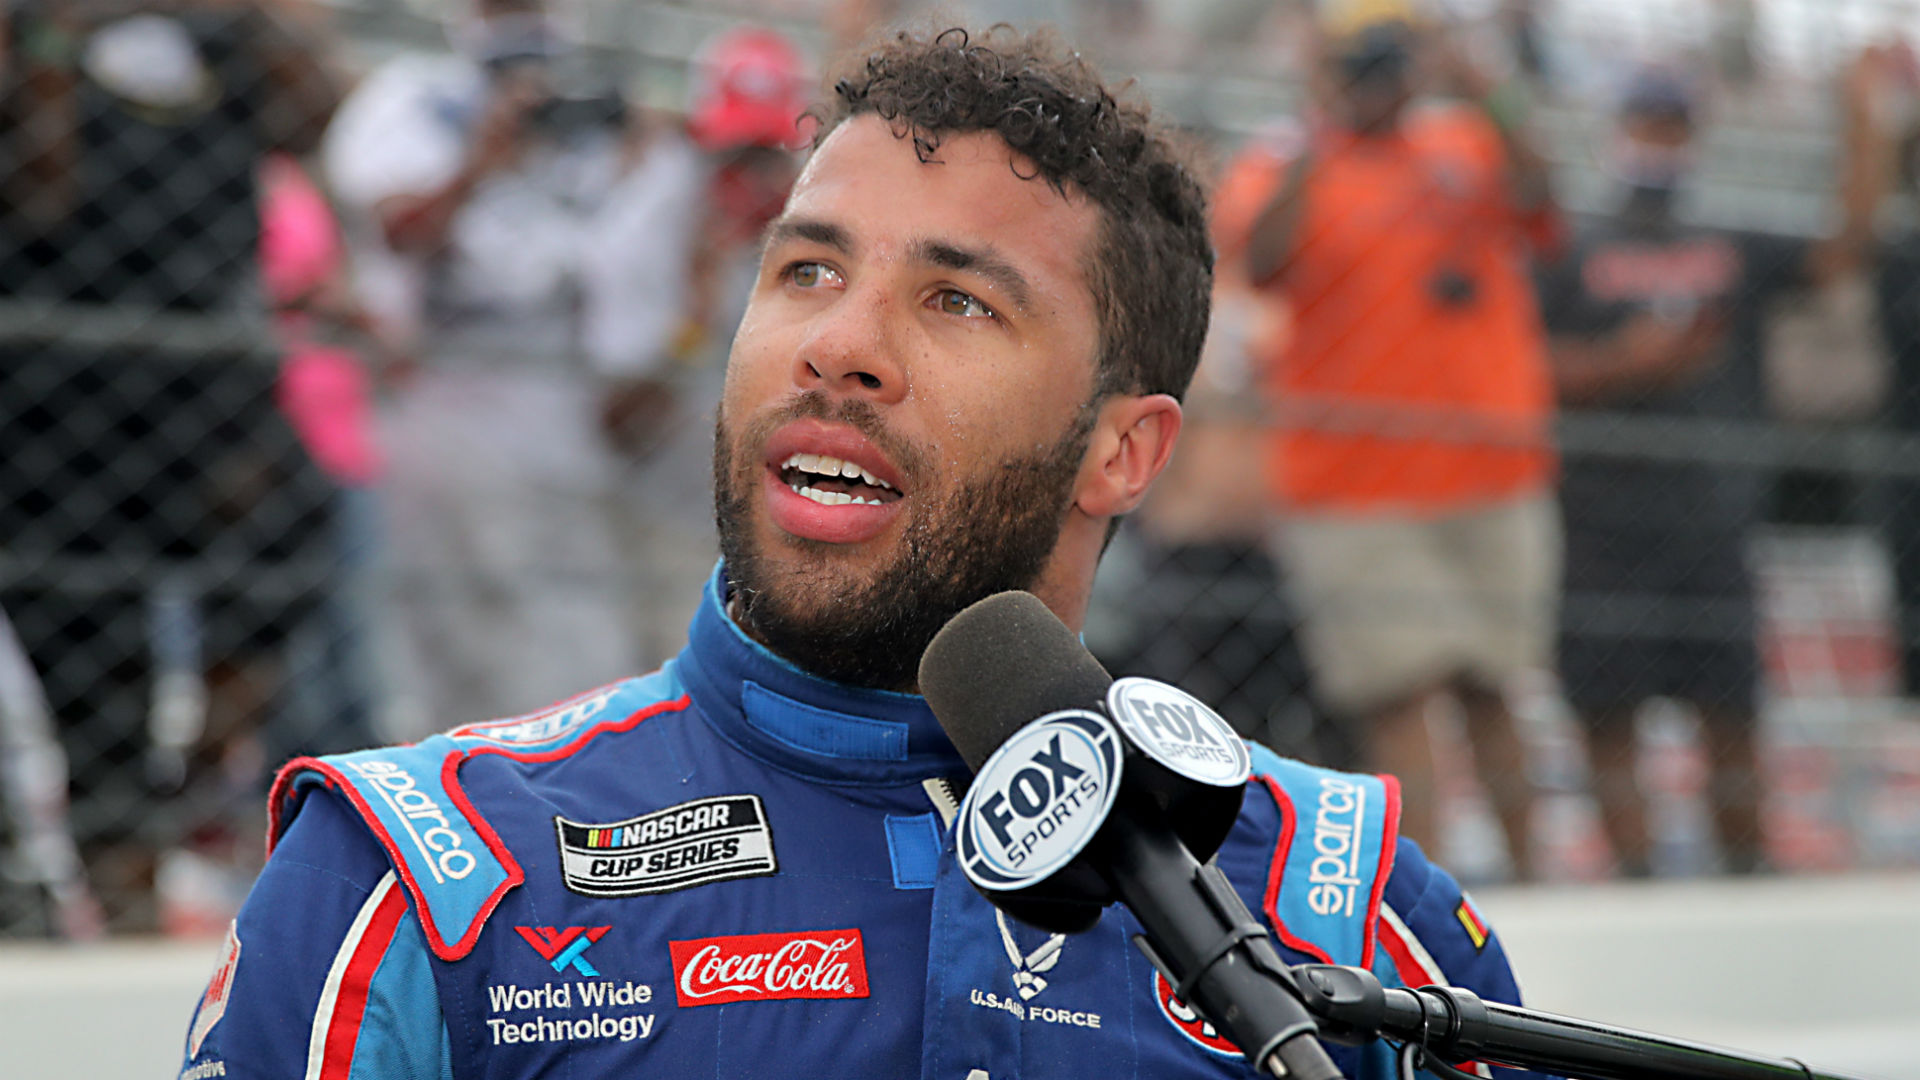 Facts of the Bubba Wallace noose case show it wasn't a hoax, and the NASCAR driver is not to blame